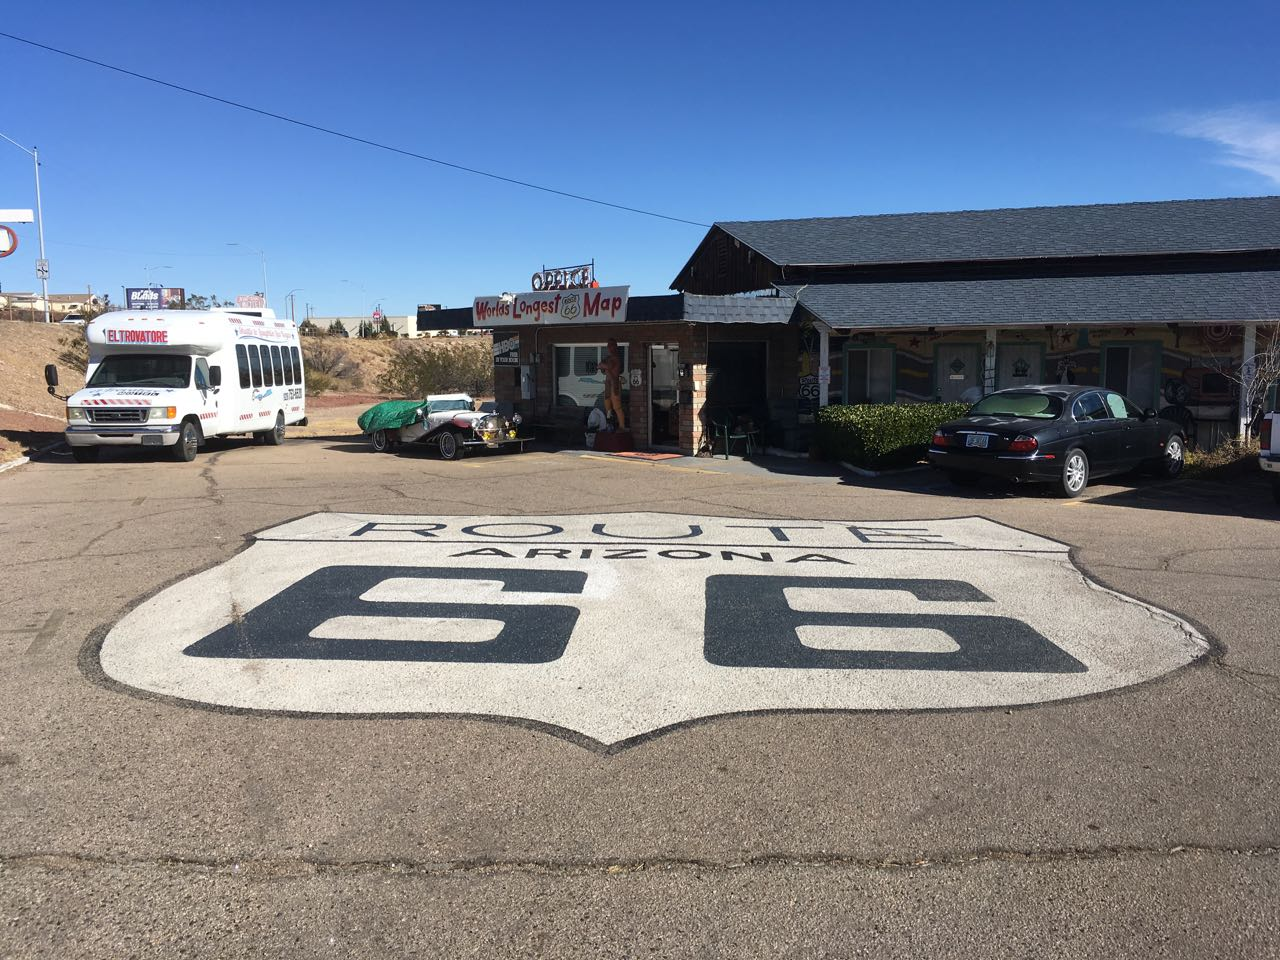 Route 66 in Kingman